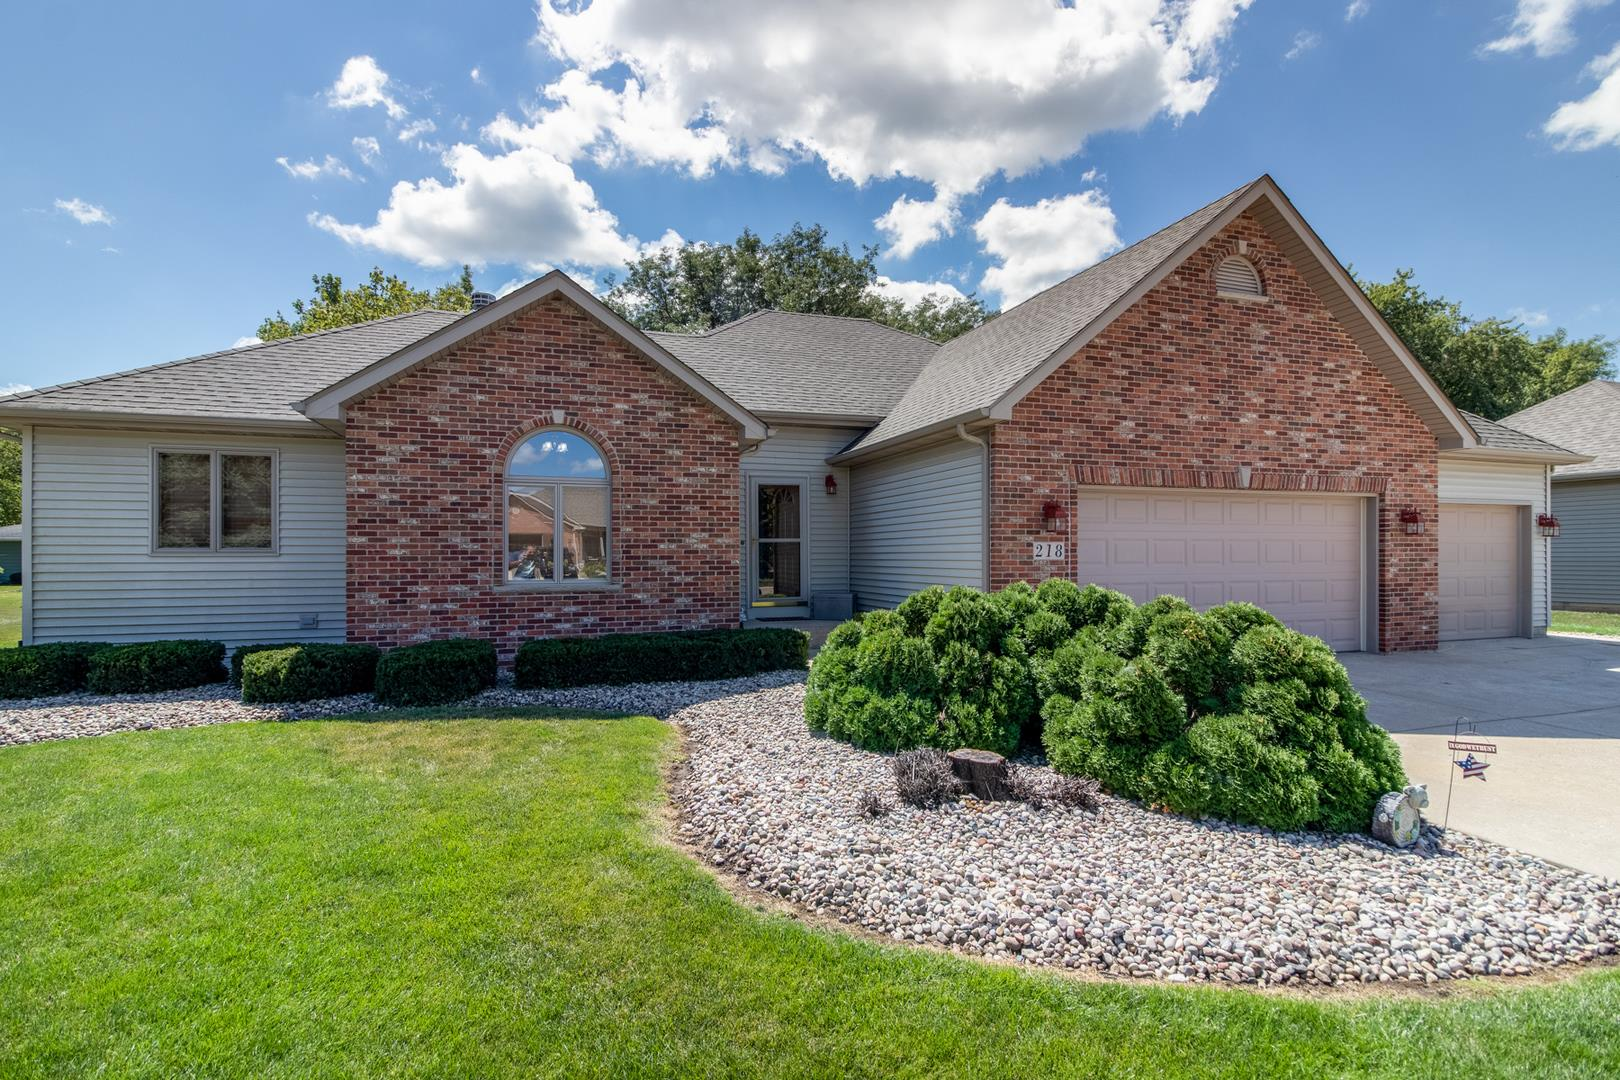 218 E Knights Road, Sandwich, IL 60548 - #: 10826375